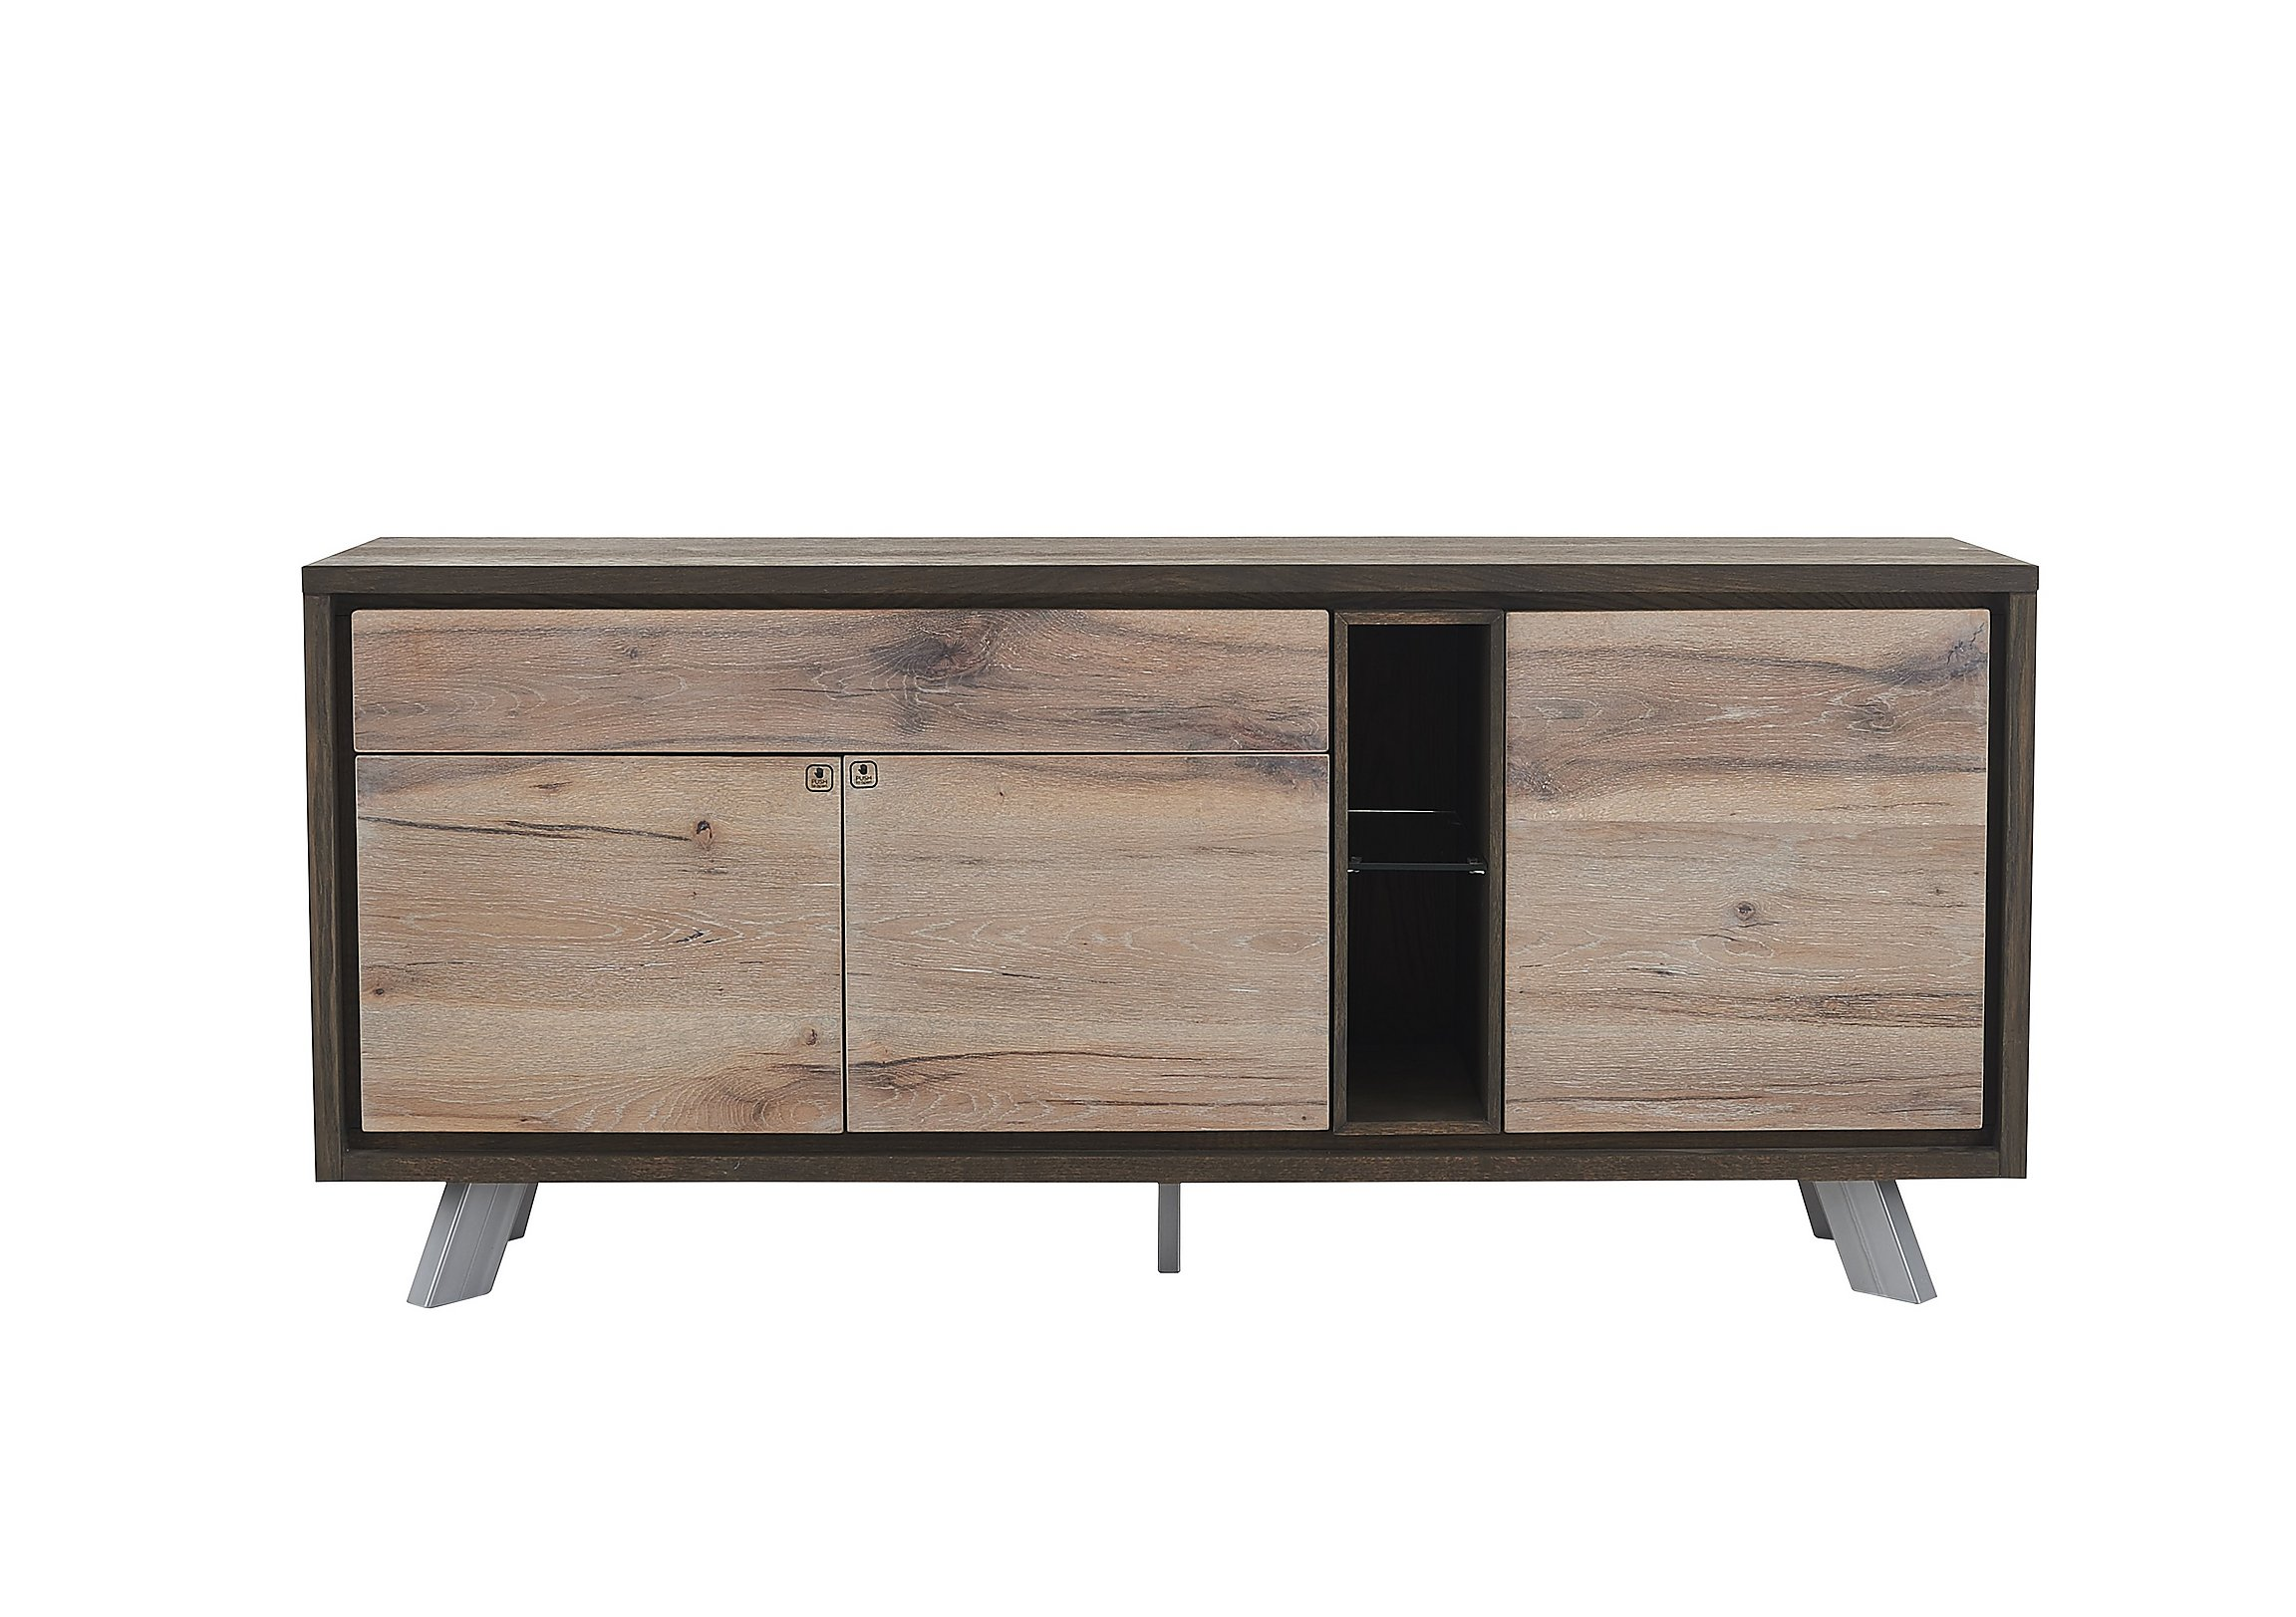 tv pin tablesbuffet arts sideboard stands tables door table crafts entry cabinet and mission